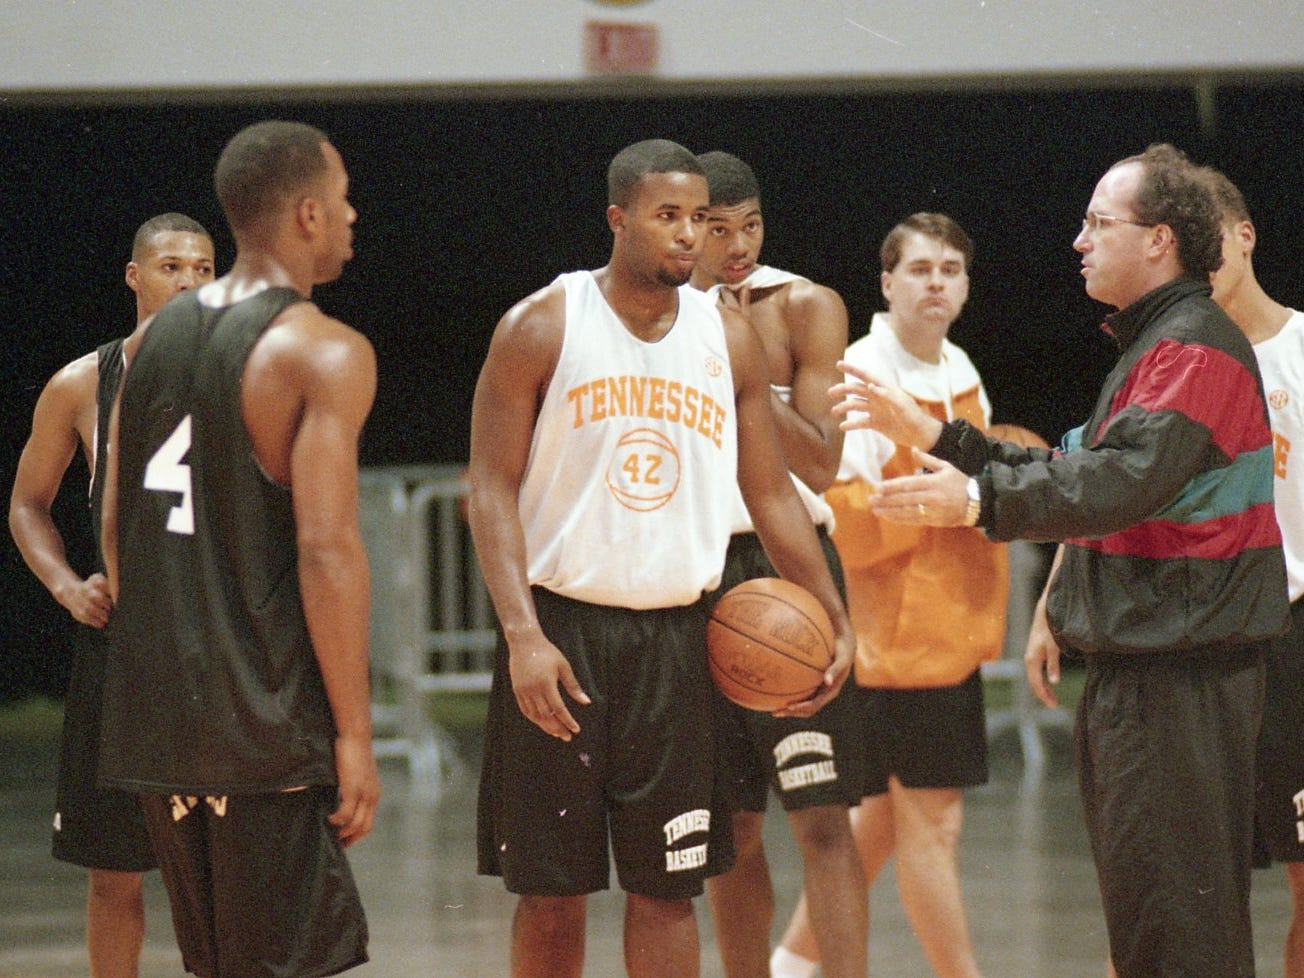 Tennessee's coach Kevin O'Neill huddles with the team to go over plays during practice in October 1995.